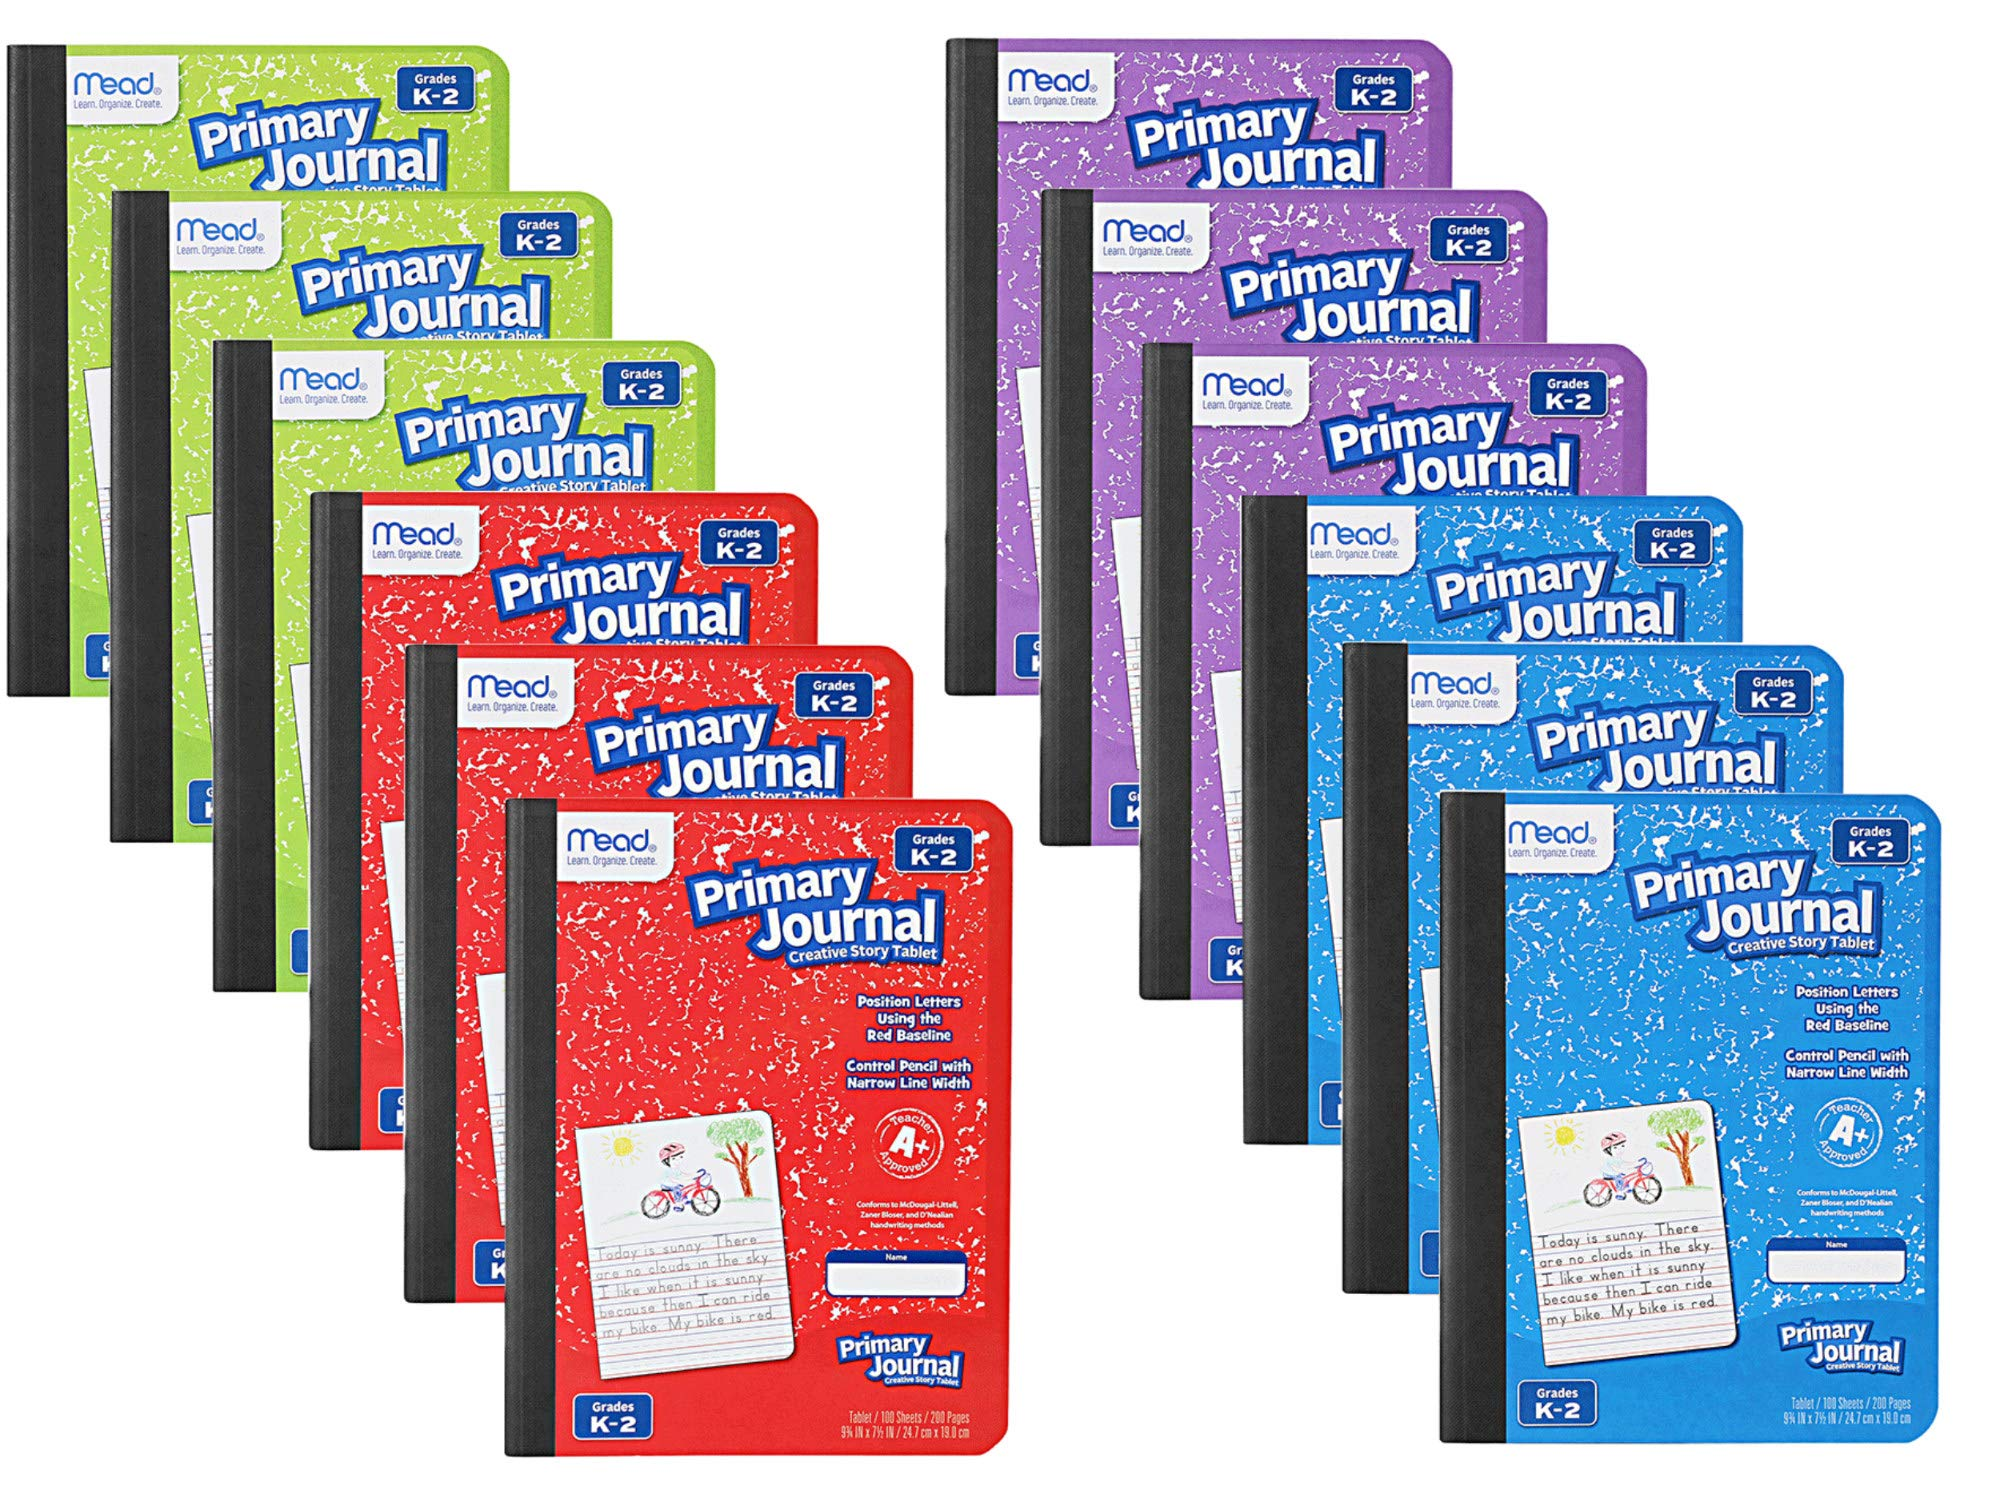 Mead Primary Journal Kindergarten Writing Tablet 12 PACK of Primary Composition Notebook For Grades K- 2, 100 Sheets (200 Pages) Creative Story Notebooks For Kids 9 3/4 in by 7 1/2 in.